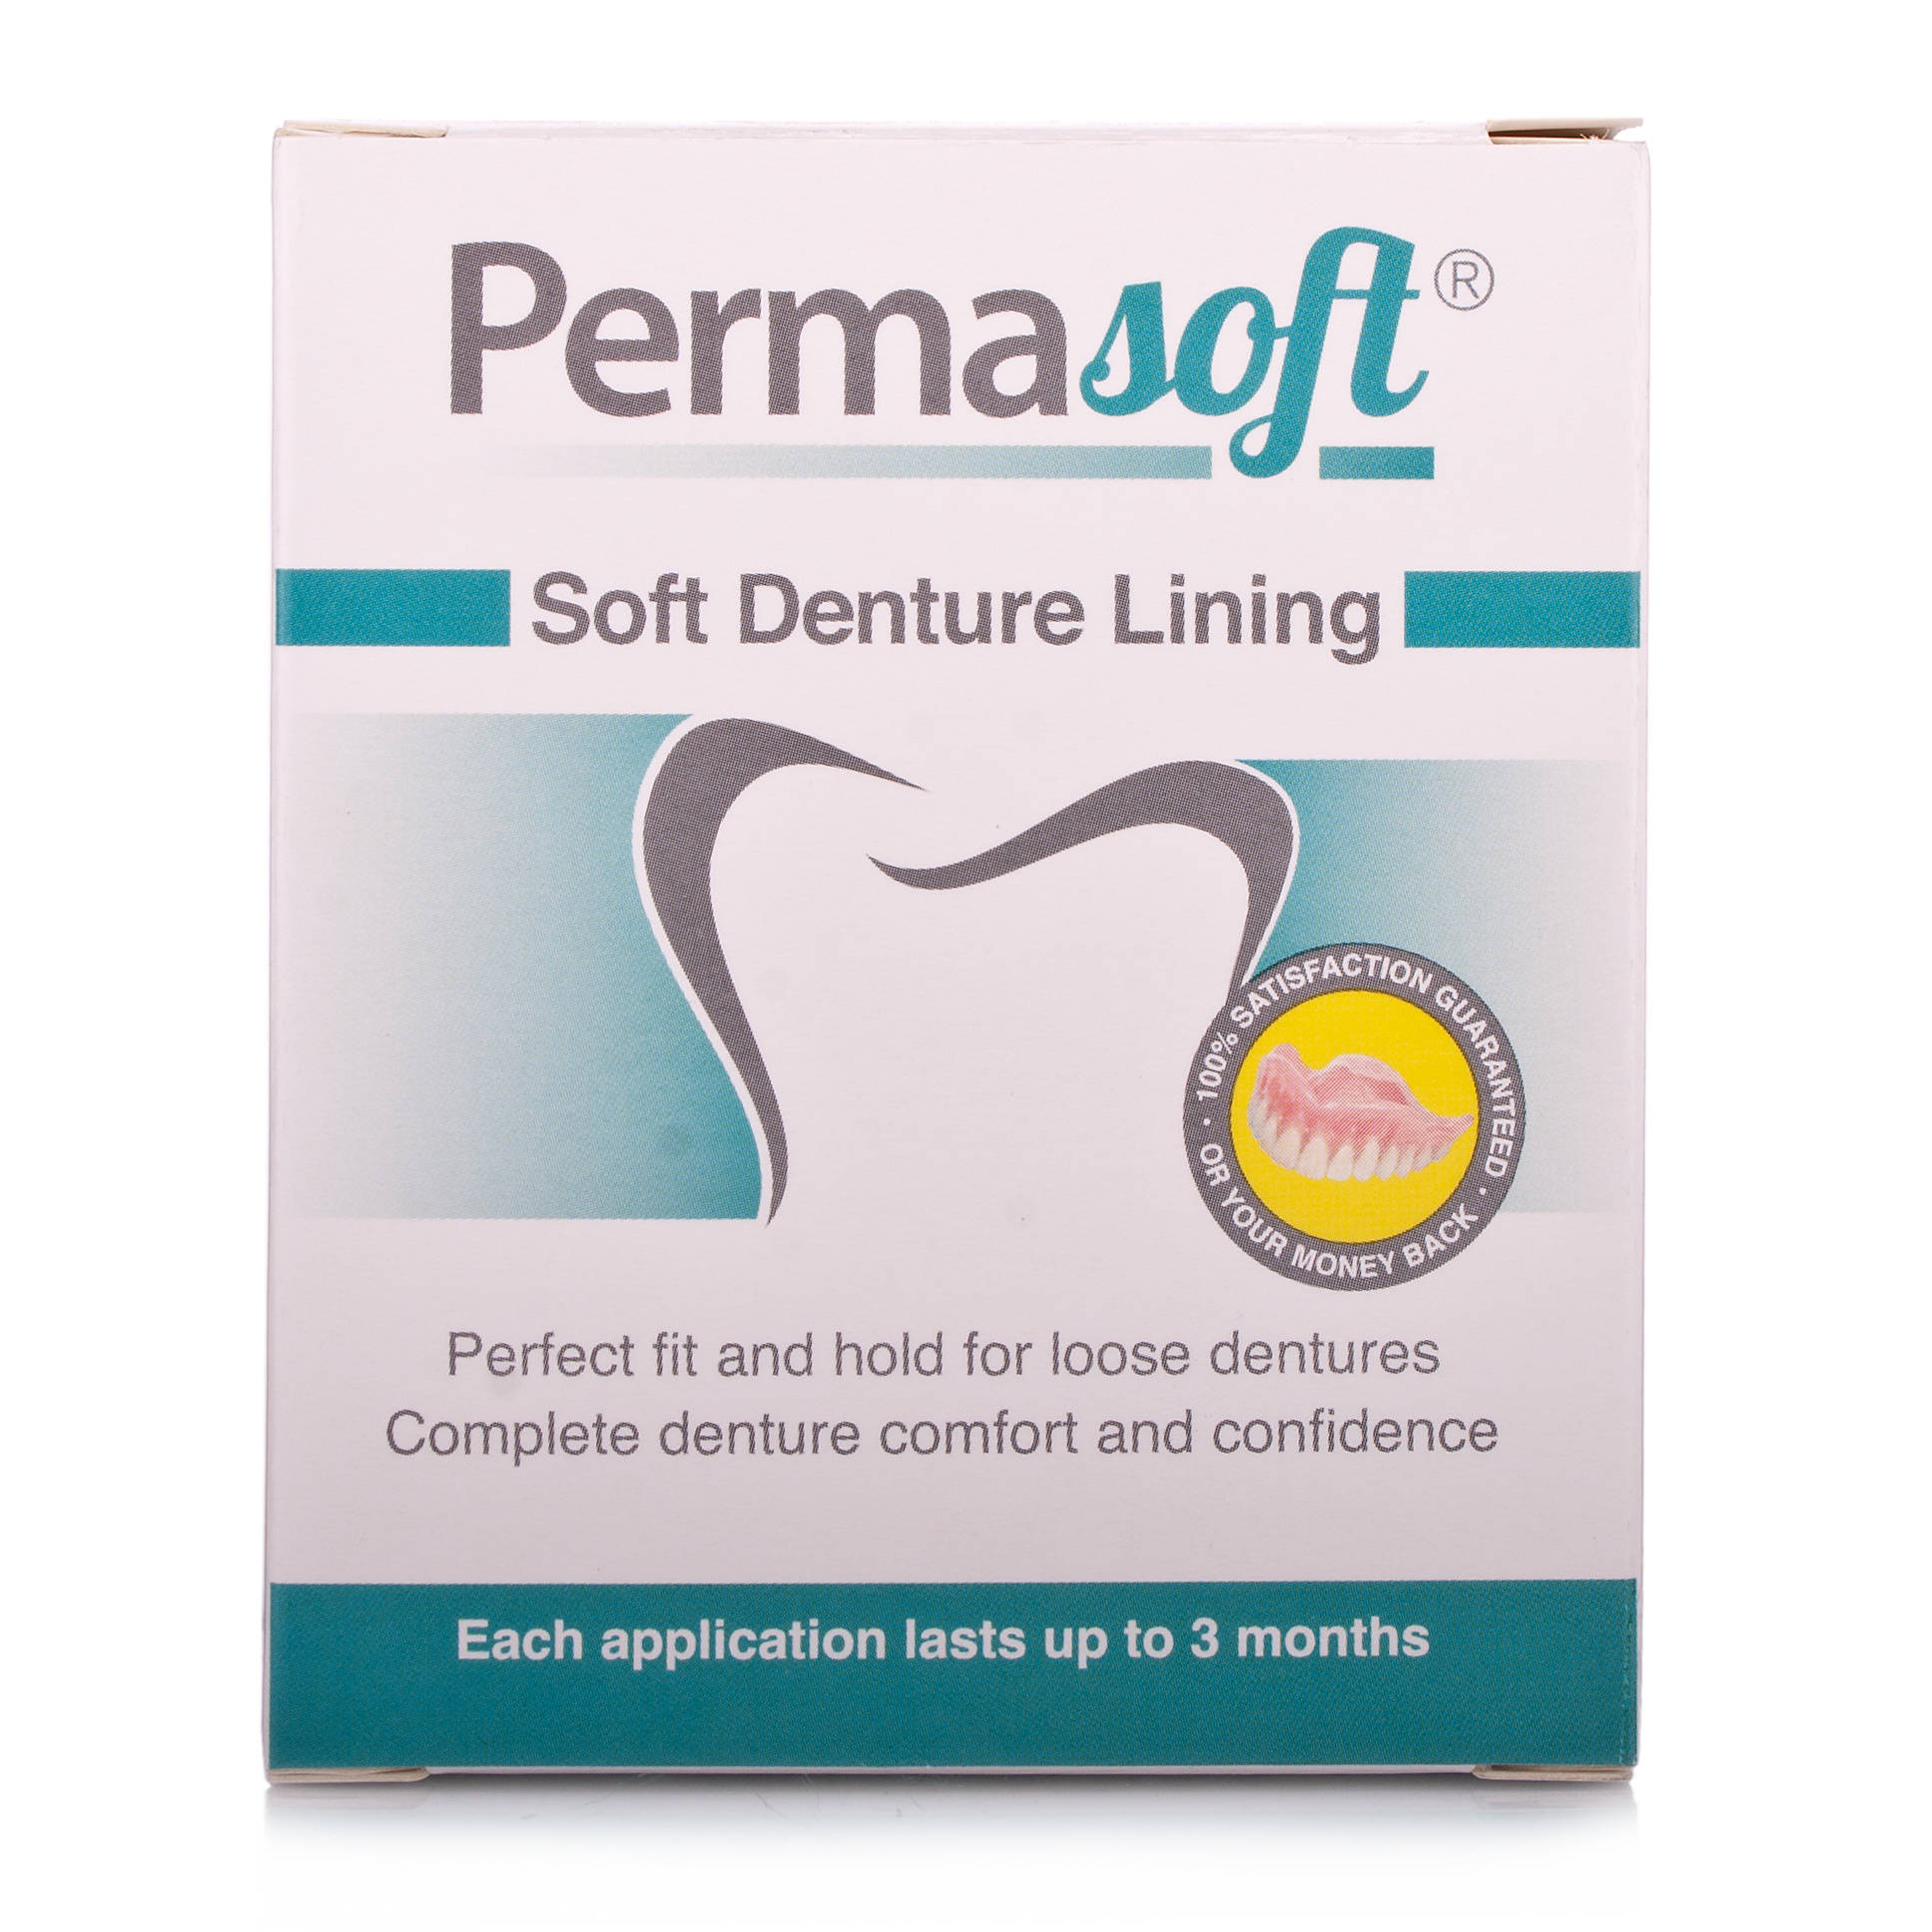 Permasoft Soft Denture Lining